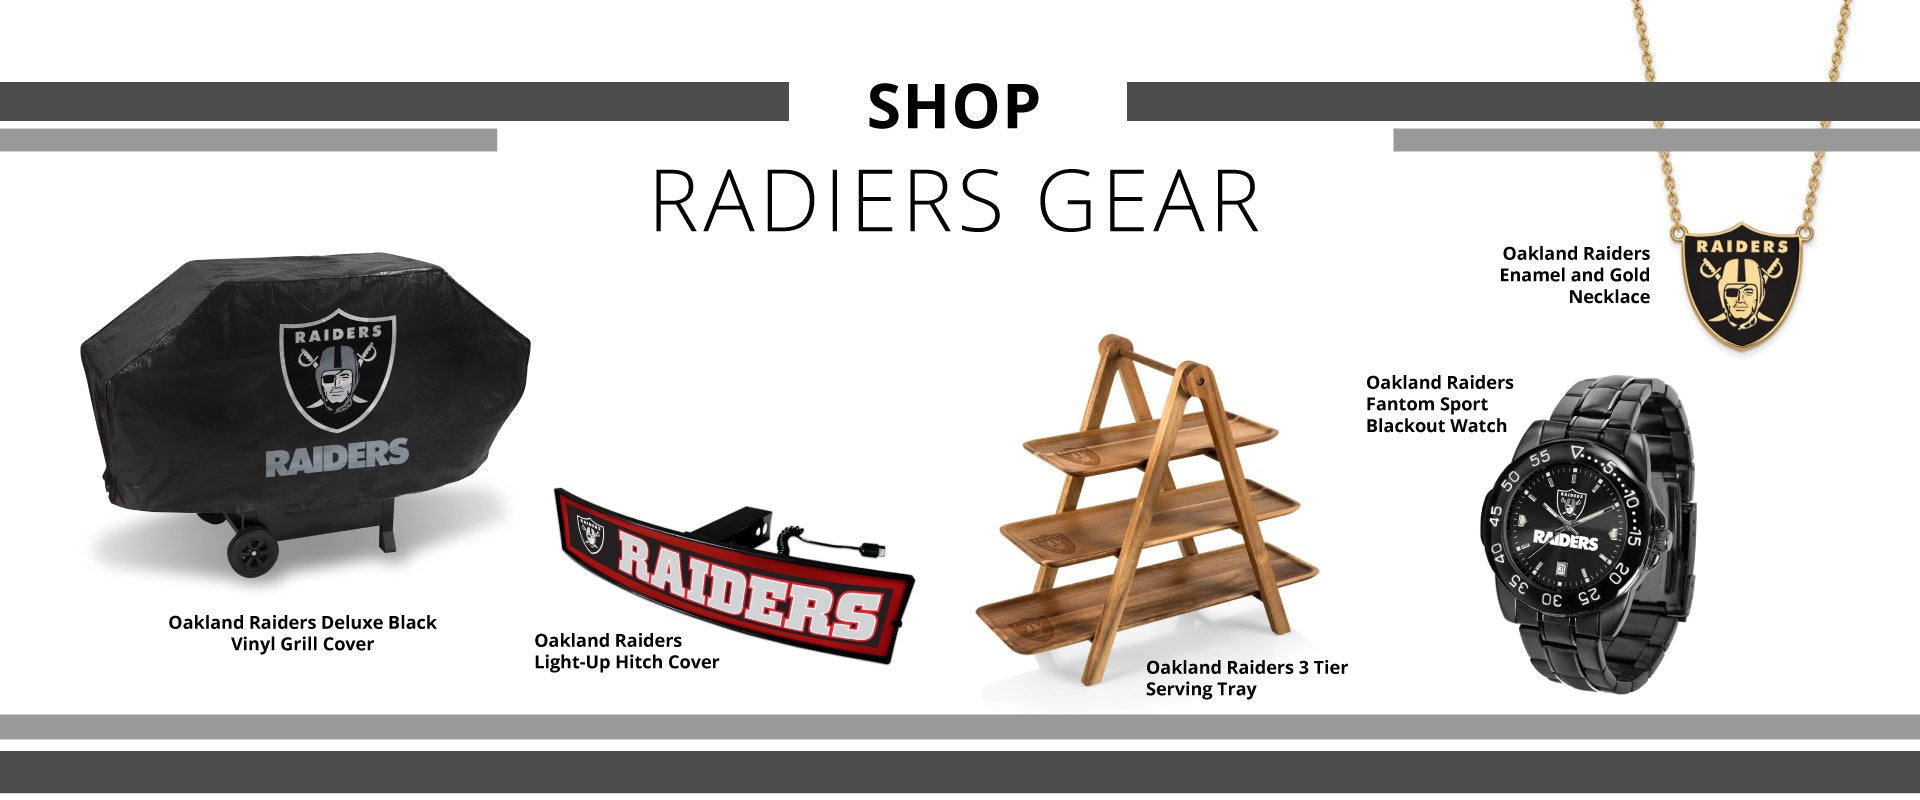 OAKLAND RAIDERS furniture for your home